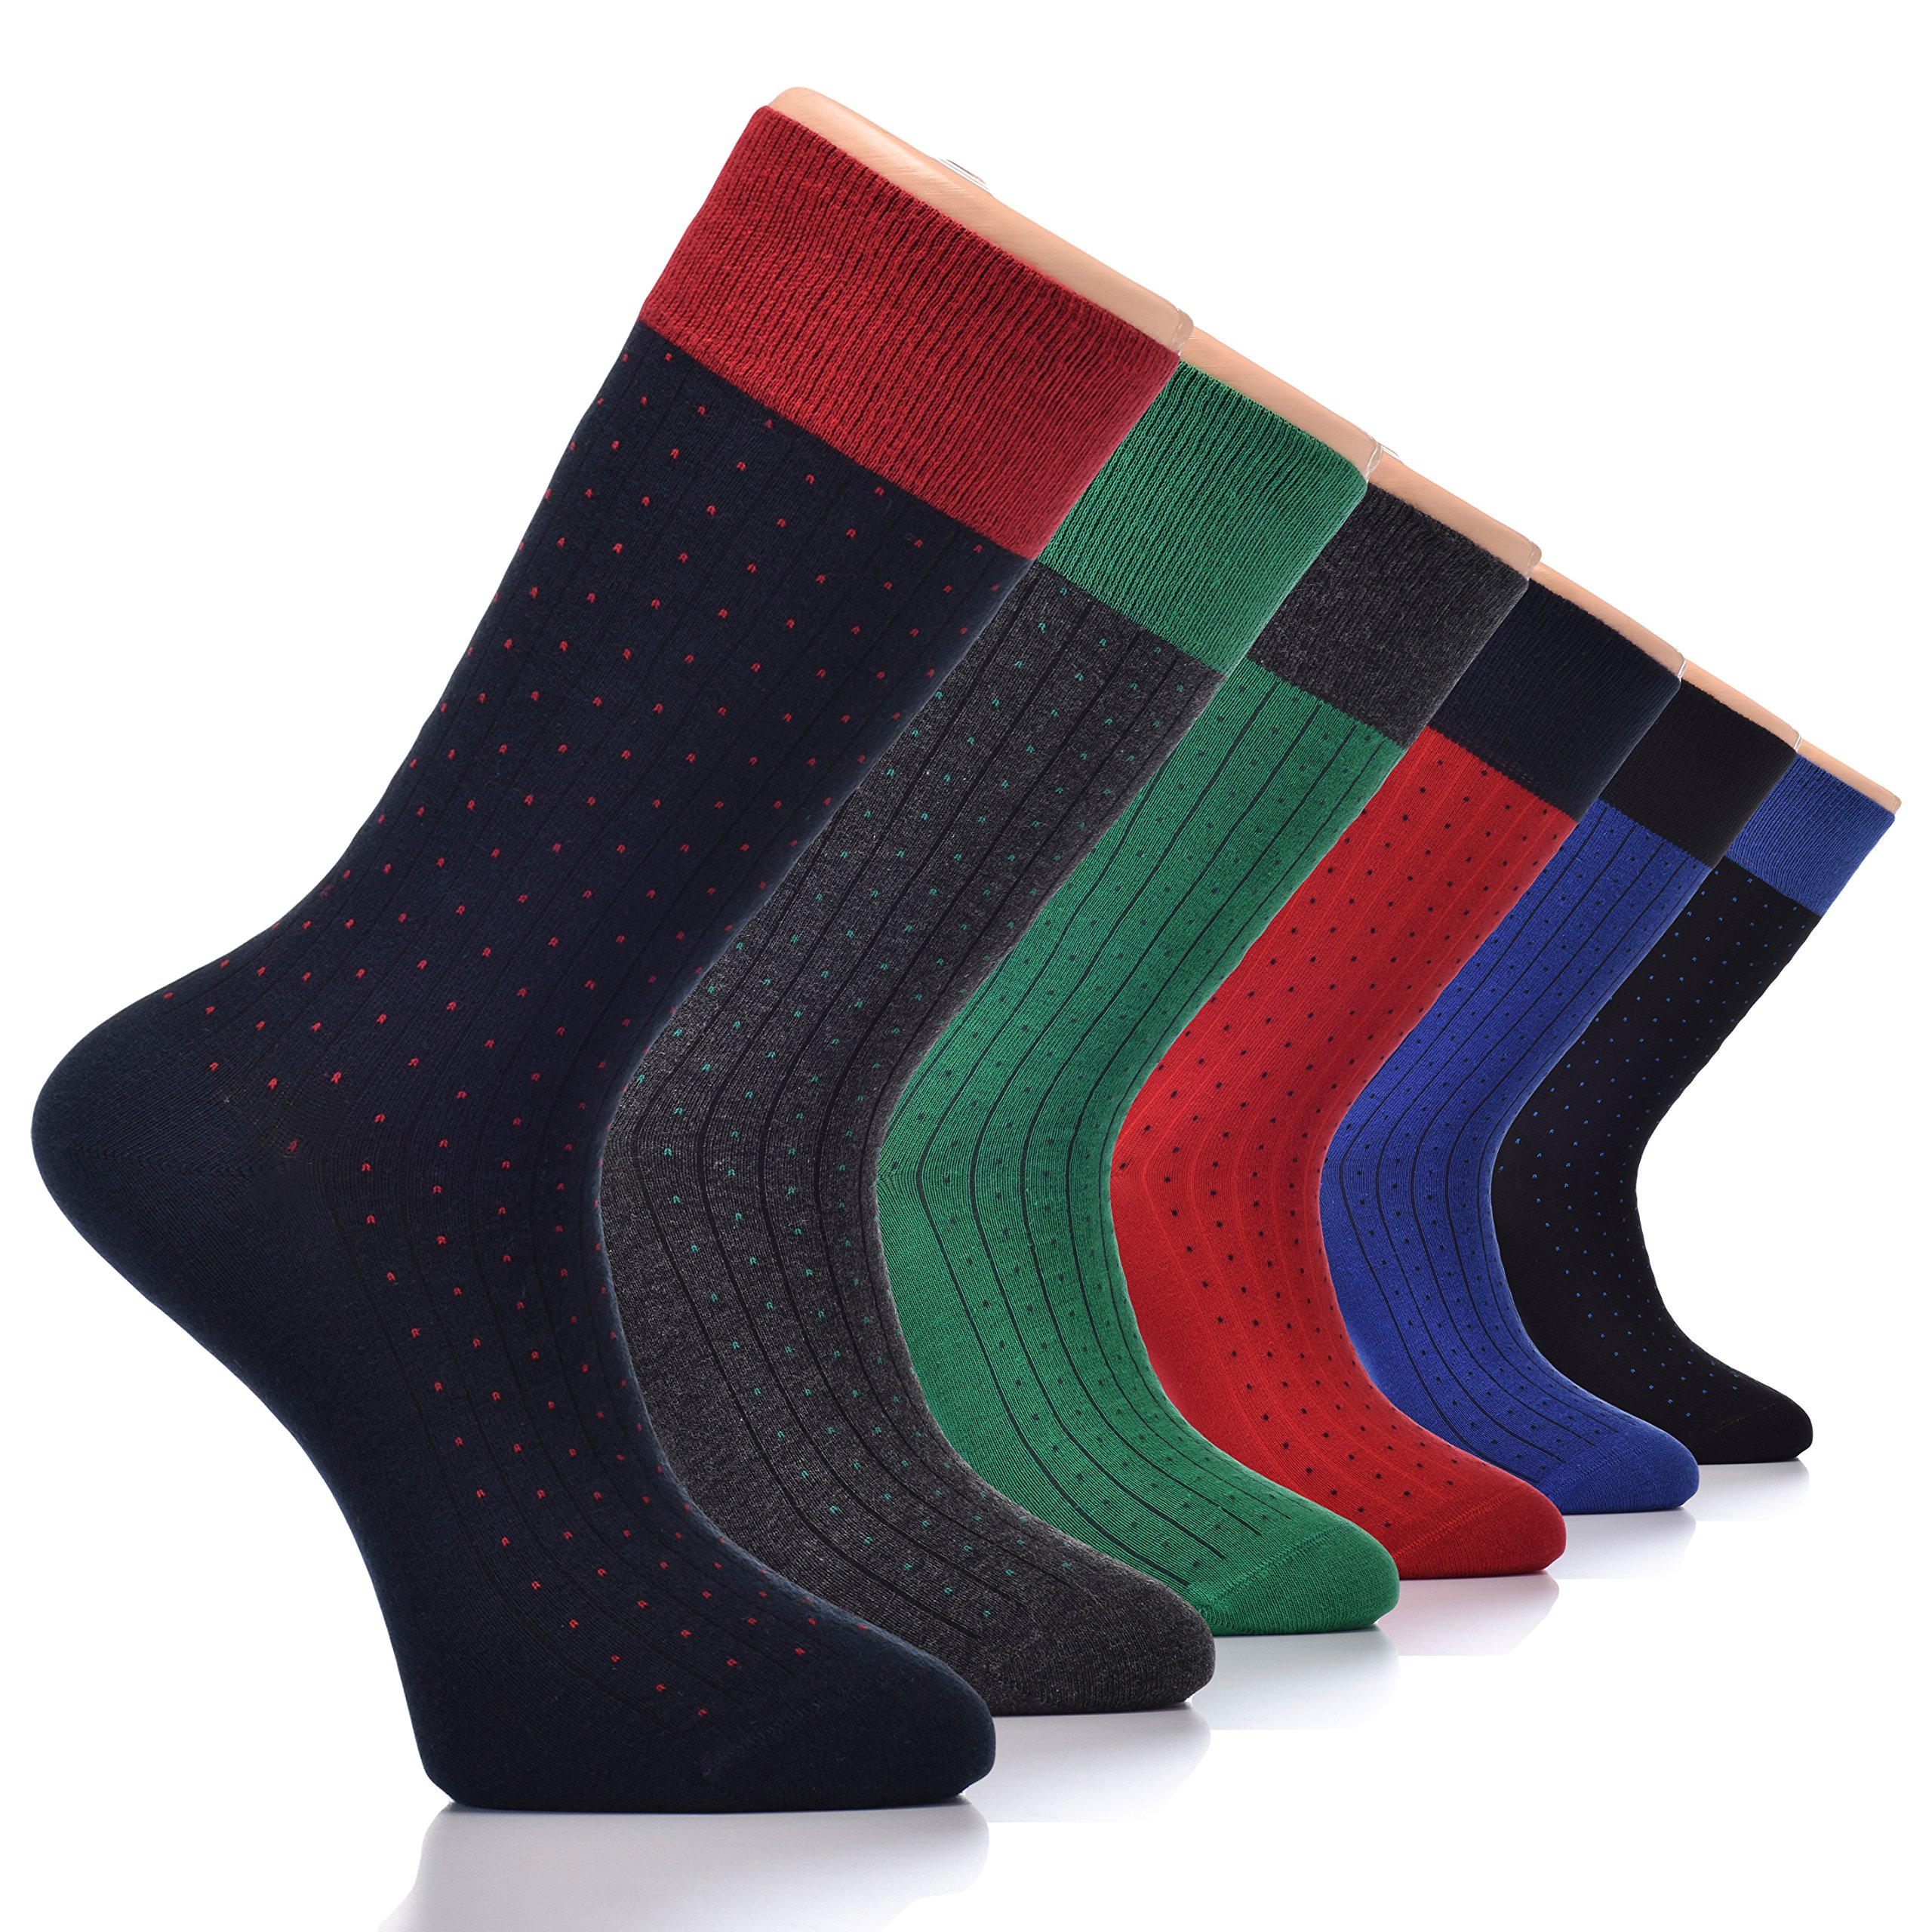 Men's Cotton Crew Socks (6-pack) |Luxury Casual, Business, Funny Colorful Patterned, Cool Dress Socks Footwear Size 7-12 (Highway)